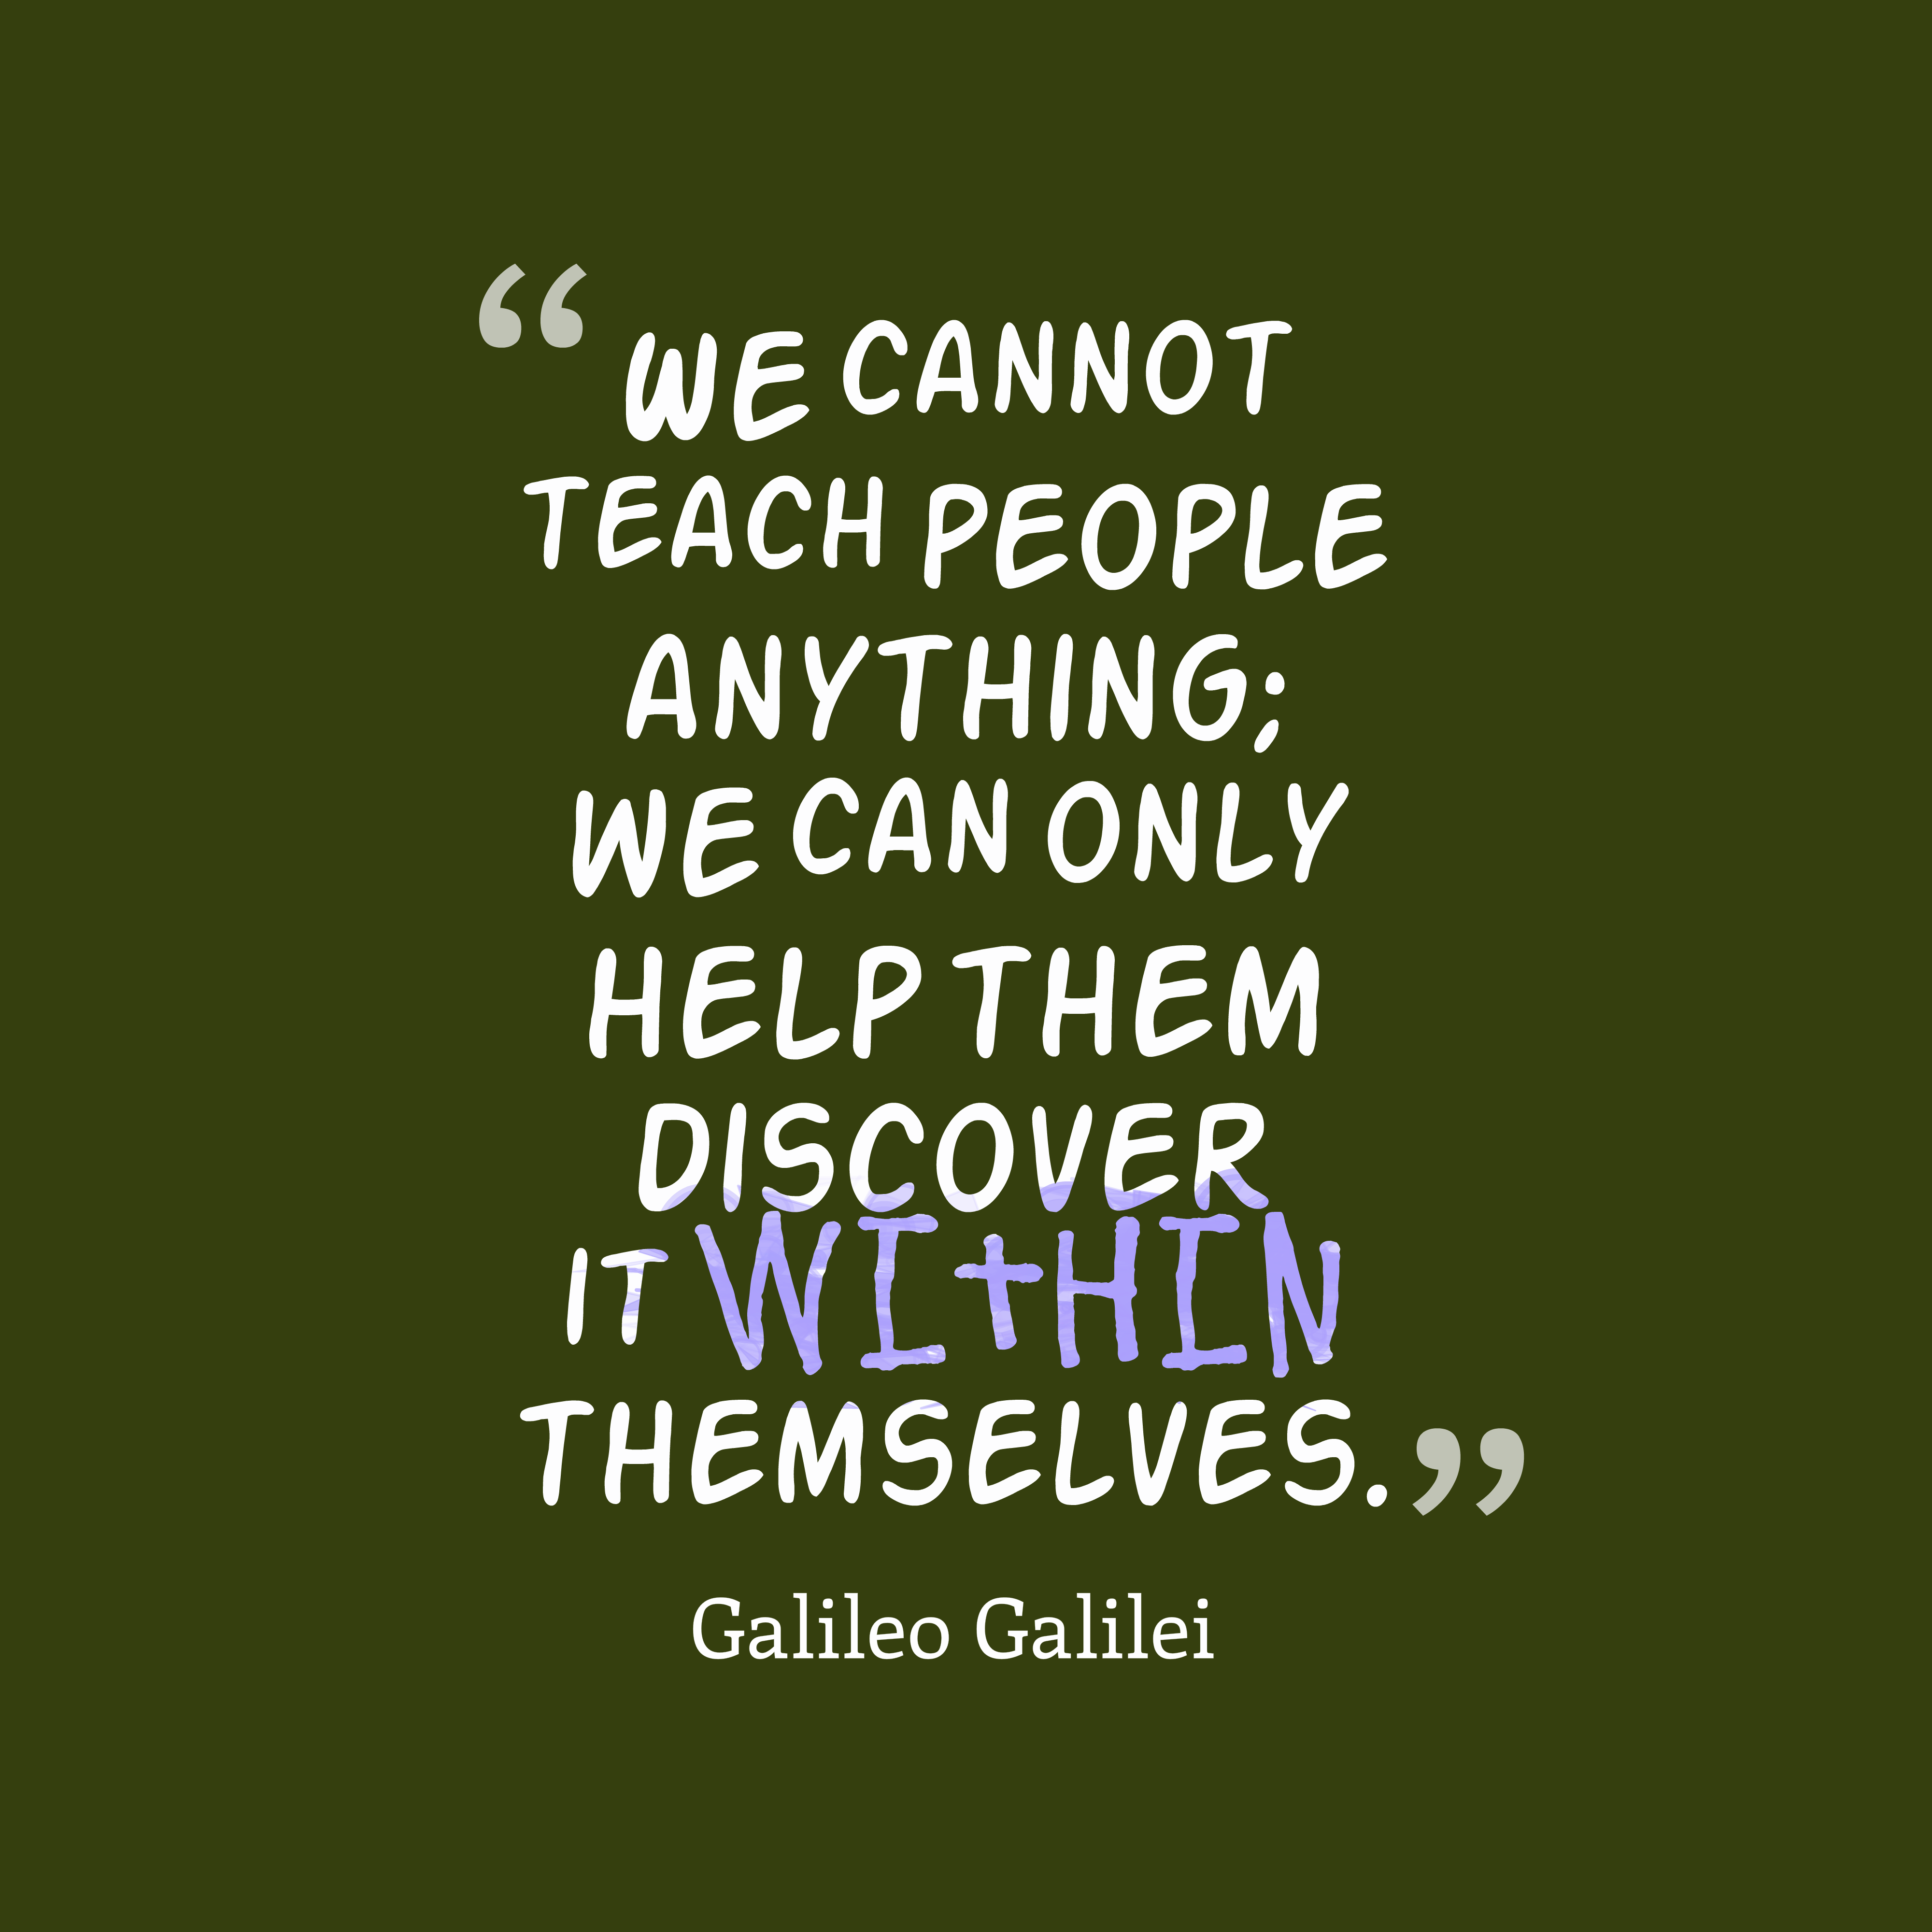 Inspirational Quotes And Sayings Inspirational Quote We Cannot Teach People Anything We Can Only